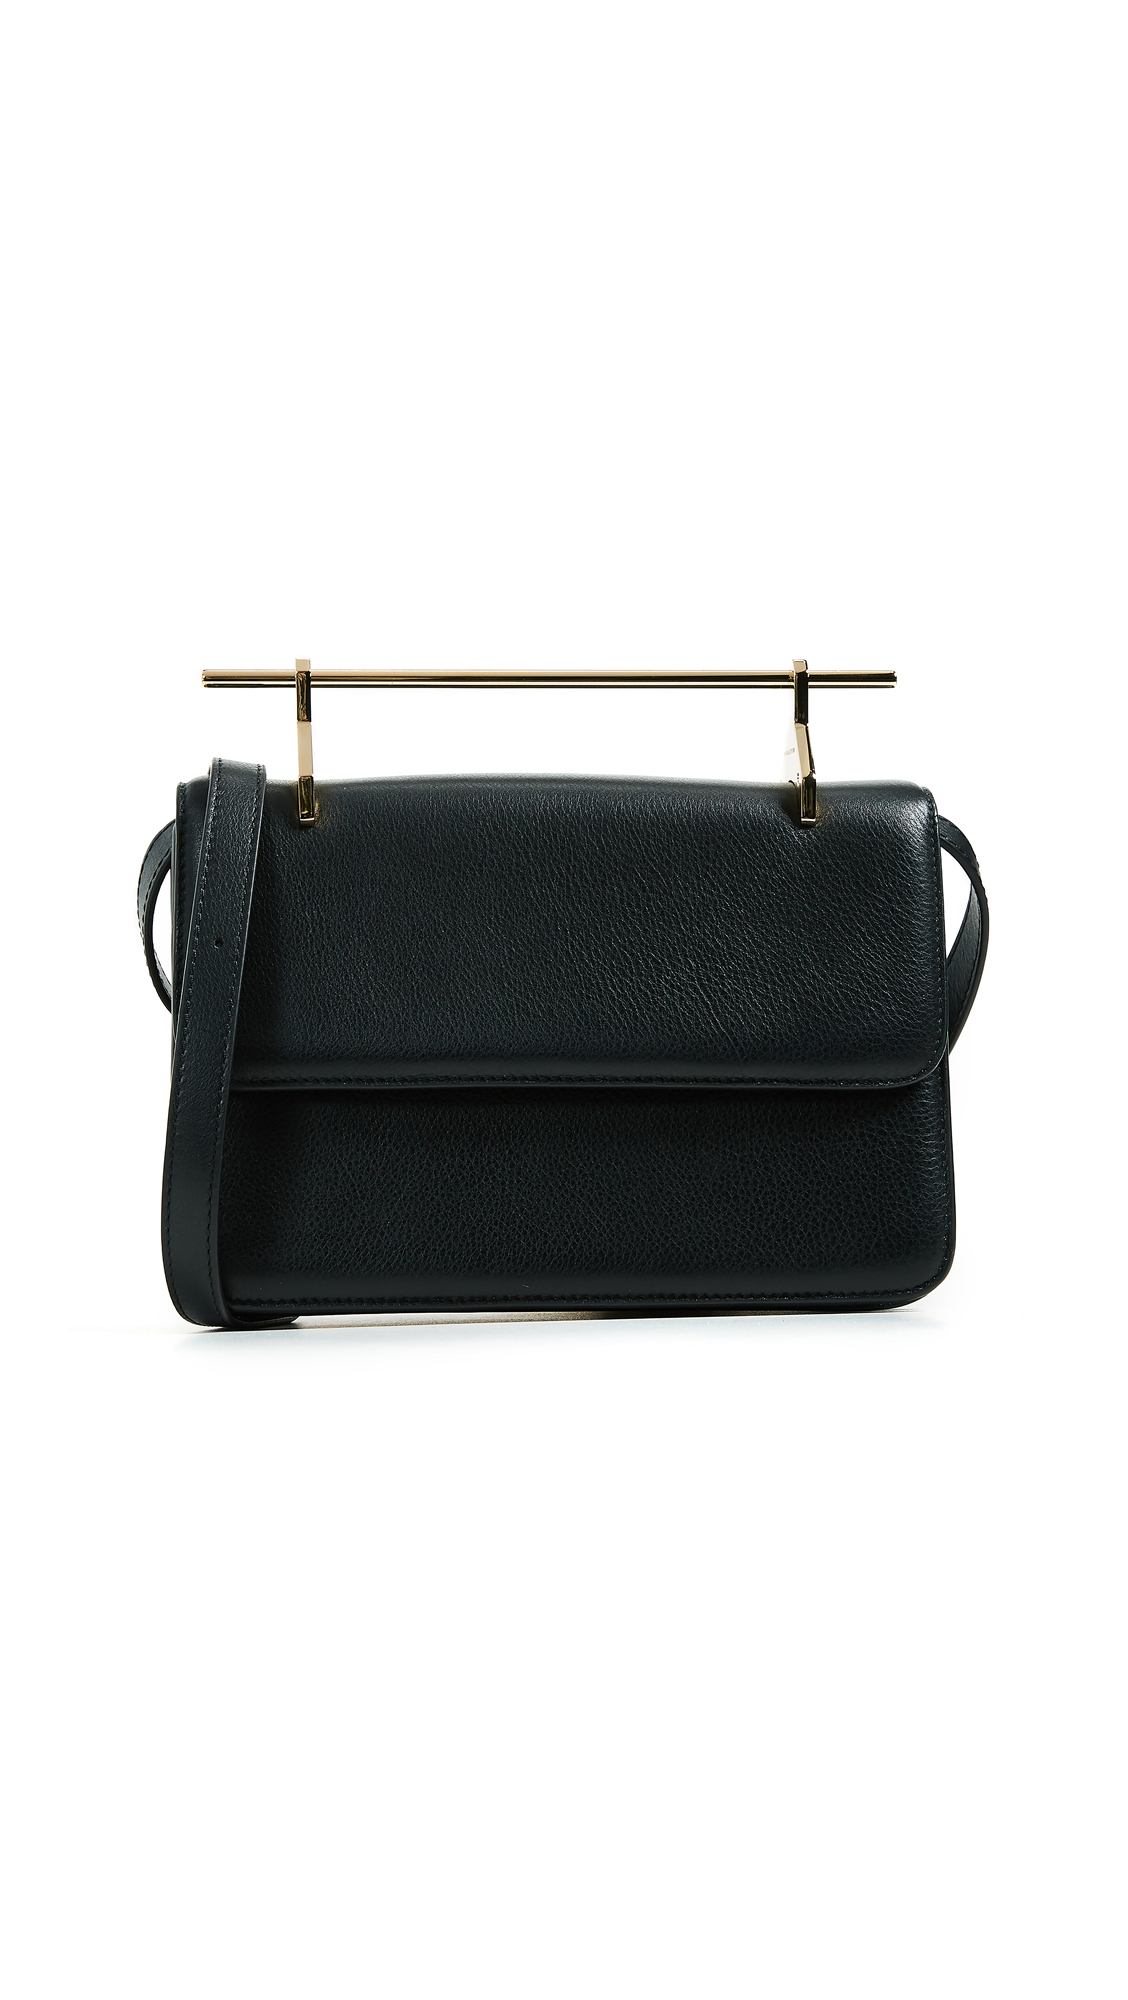 M2MALLETIER La Fleur Du Mal Cross Body Bag in Leather